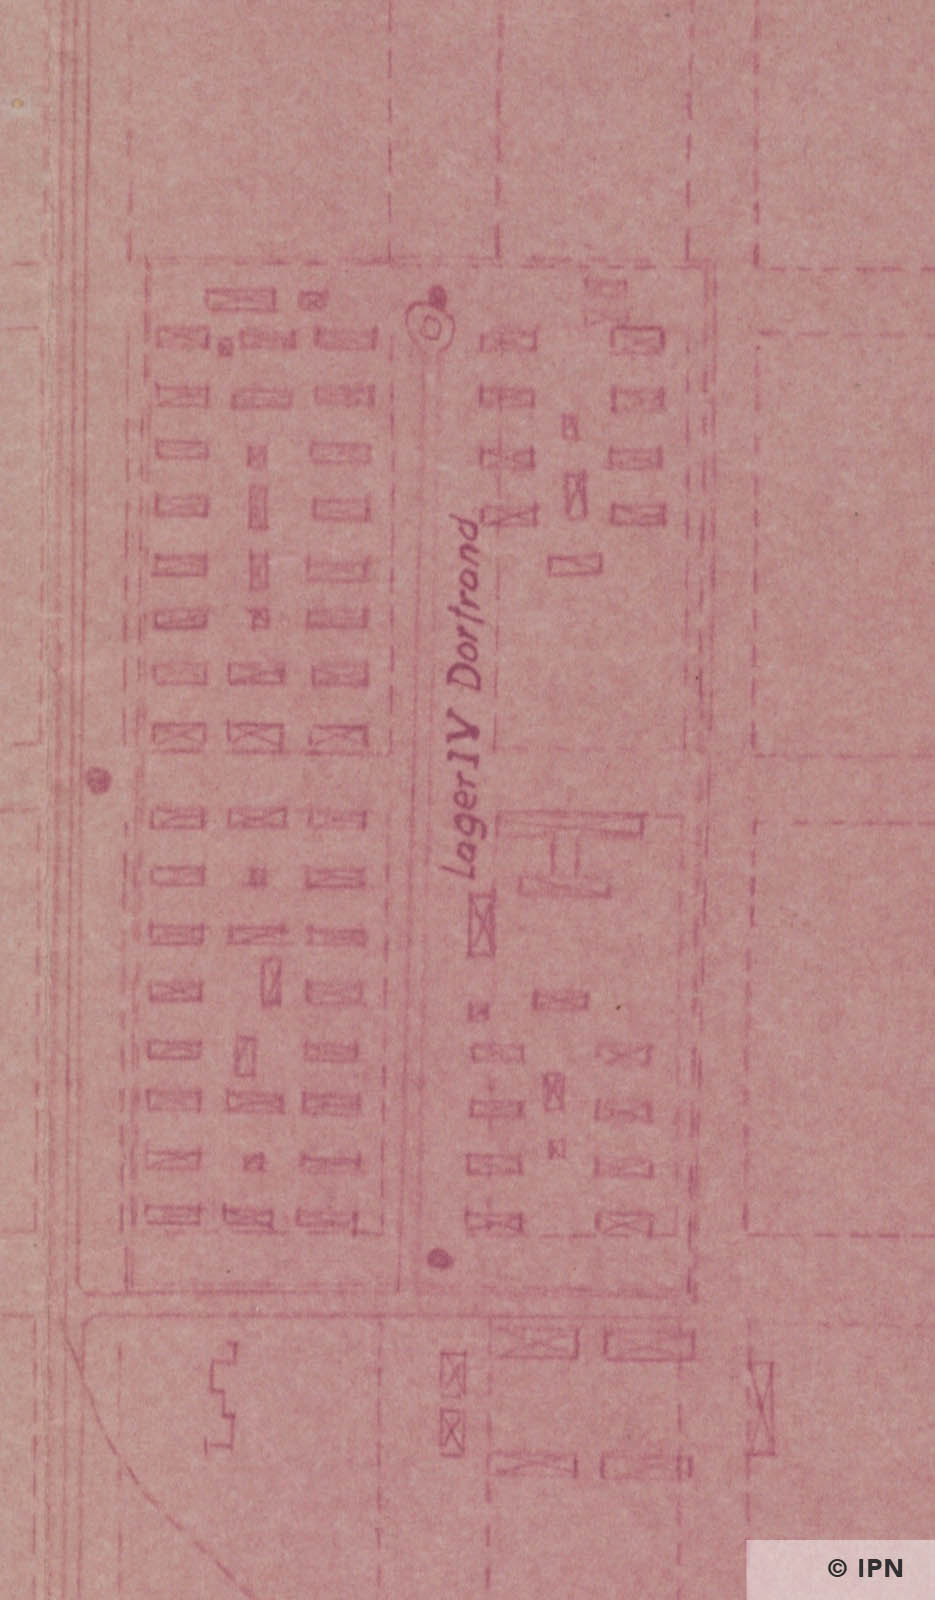 Technical drawing of Lager IV Dorfrand (Monowitz) from IG Farben AG Werk Auschwitz Plan. 20 August 1944 IPN GK 196 101 0041